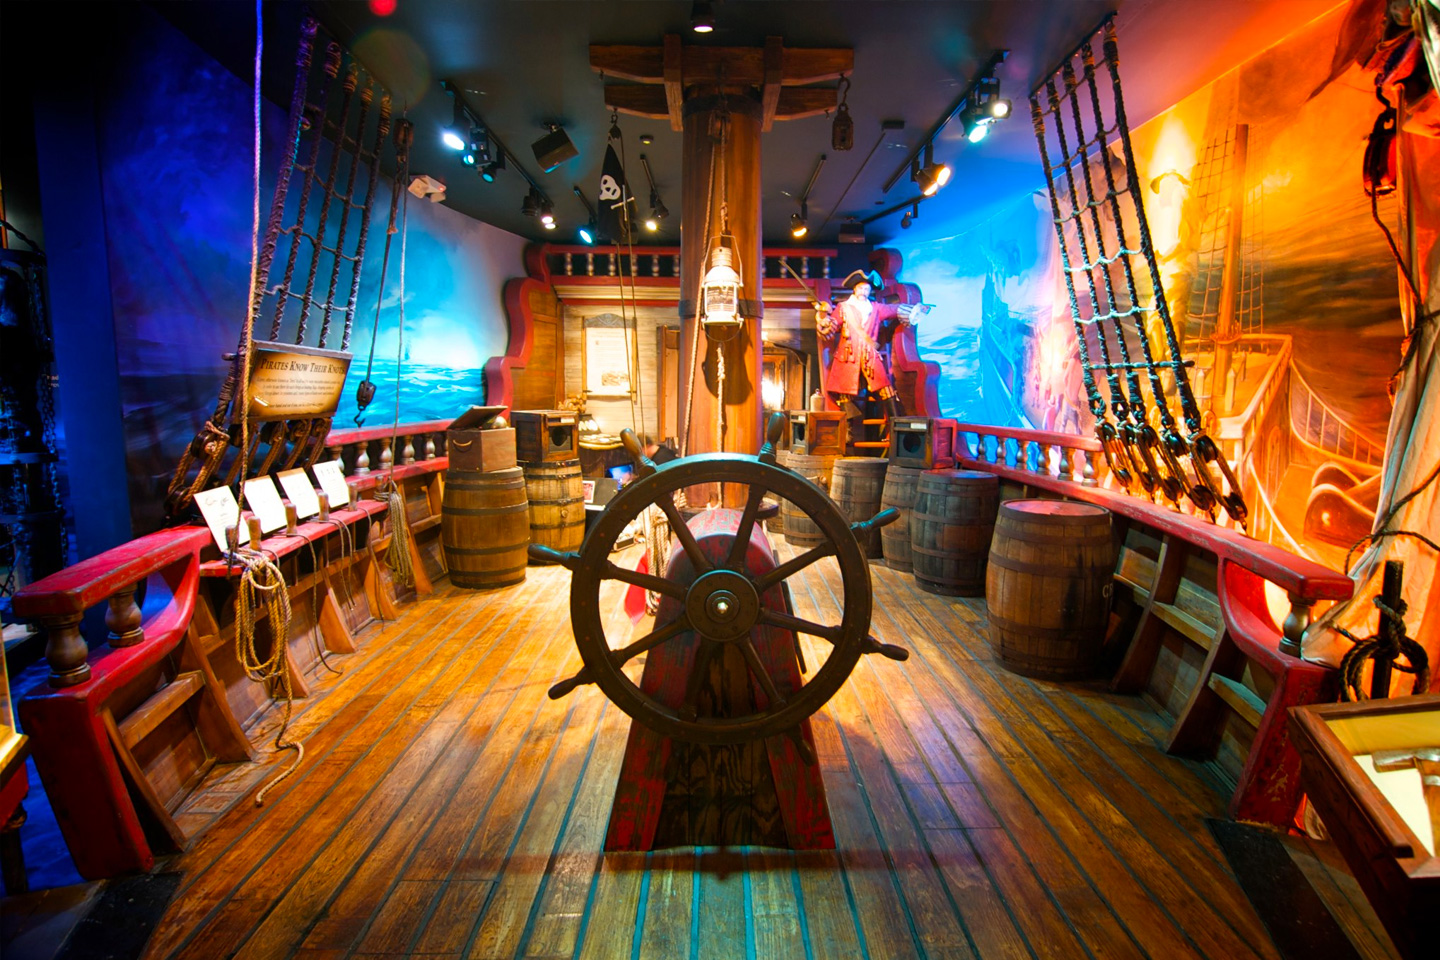 List of Fun Things To Do In St. Augustine, Florida - St. Augustine Pirate & Treasure Museum